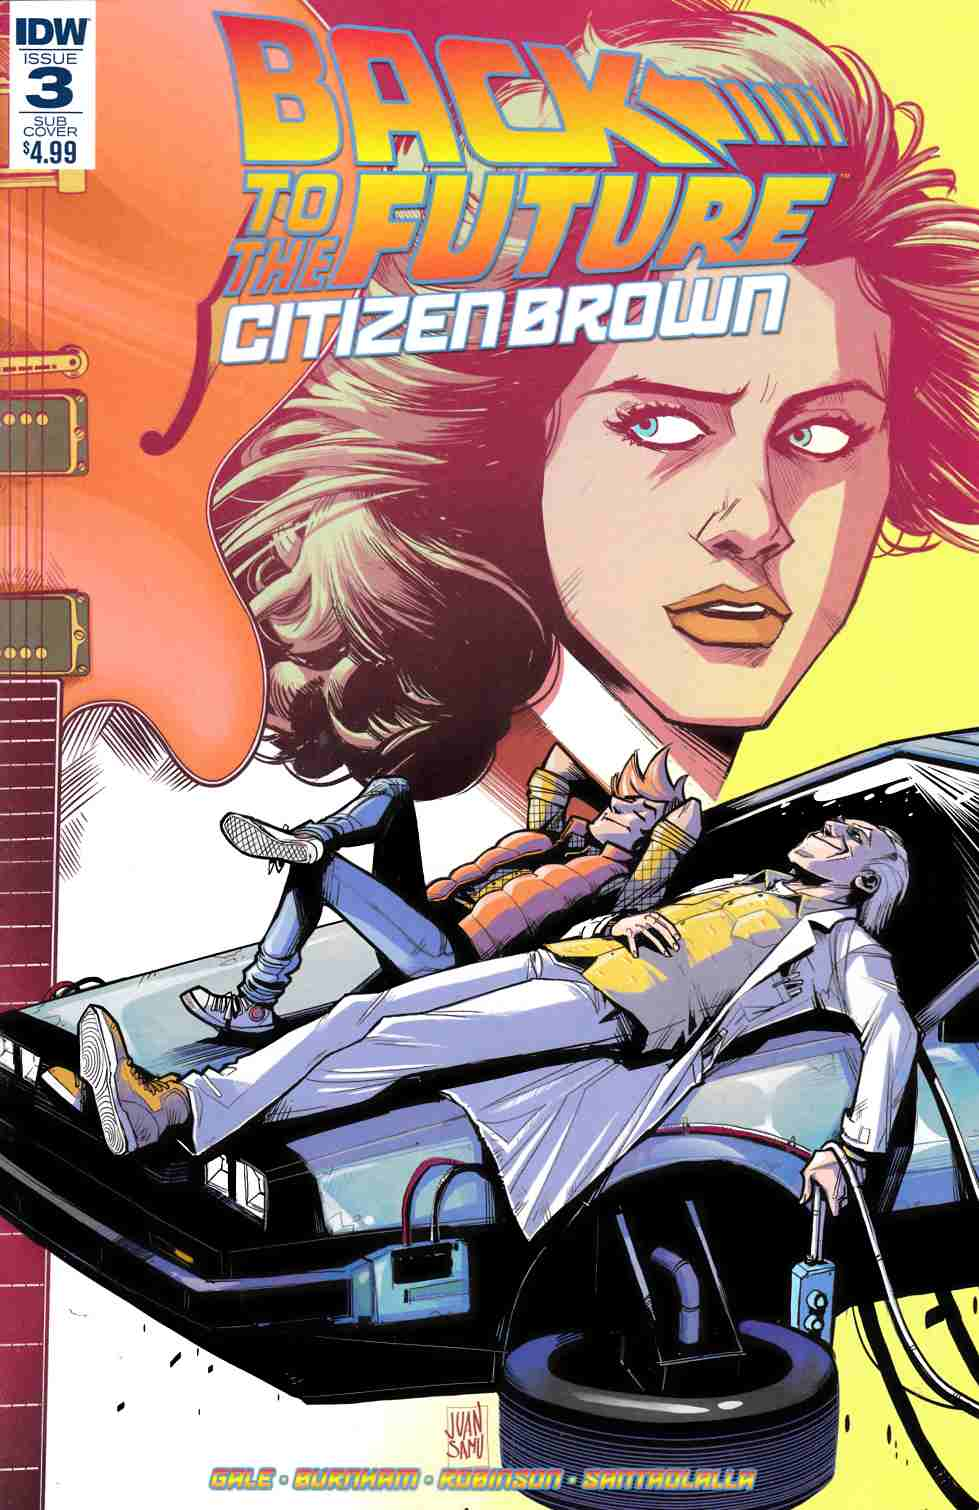 Back to the Future Citizen Brown #3 Subscription Cover [IDW Comic]